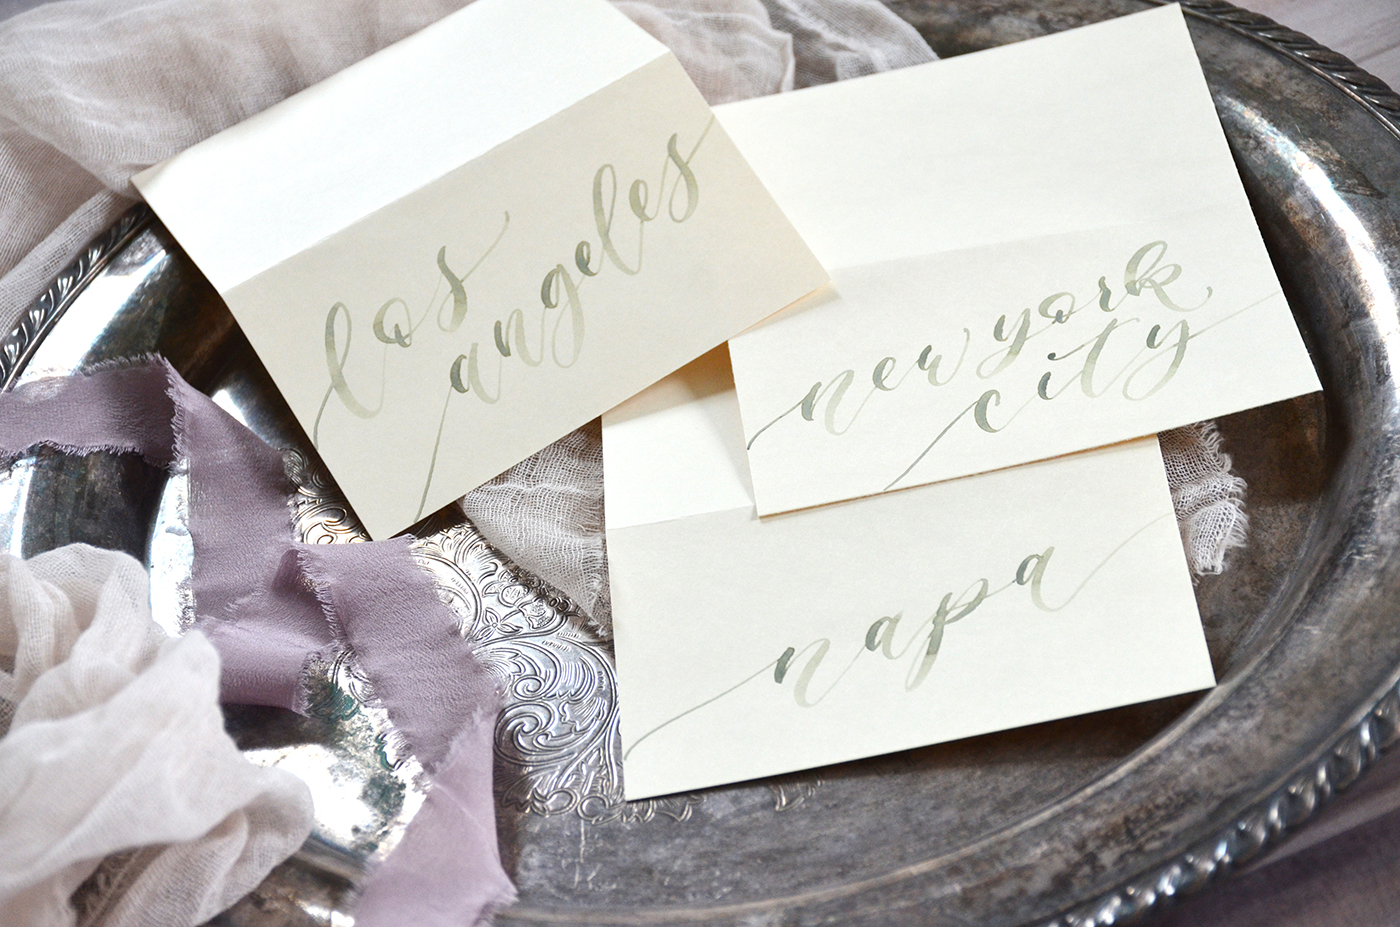 Sage Green Watercolor City Tent Cards for Wedding Centerpiece Table Names and Numbers by YourNewFriendSam on Etsy.jpg